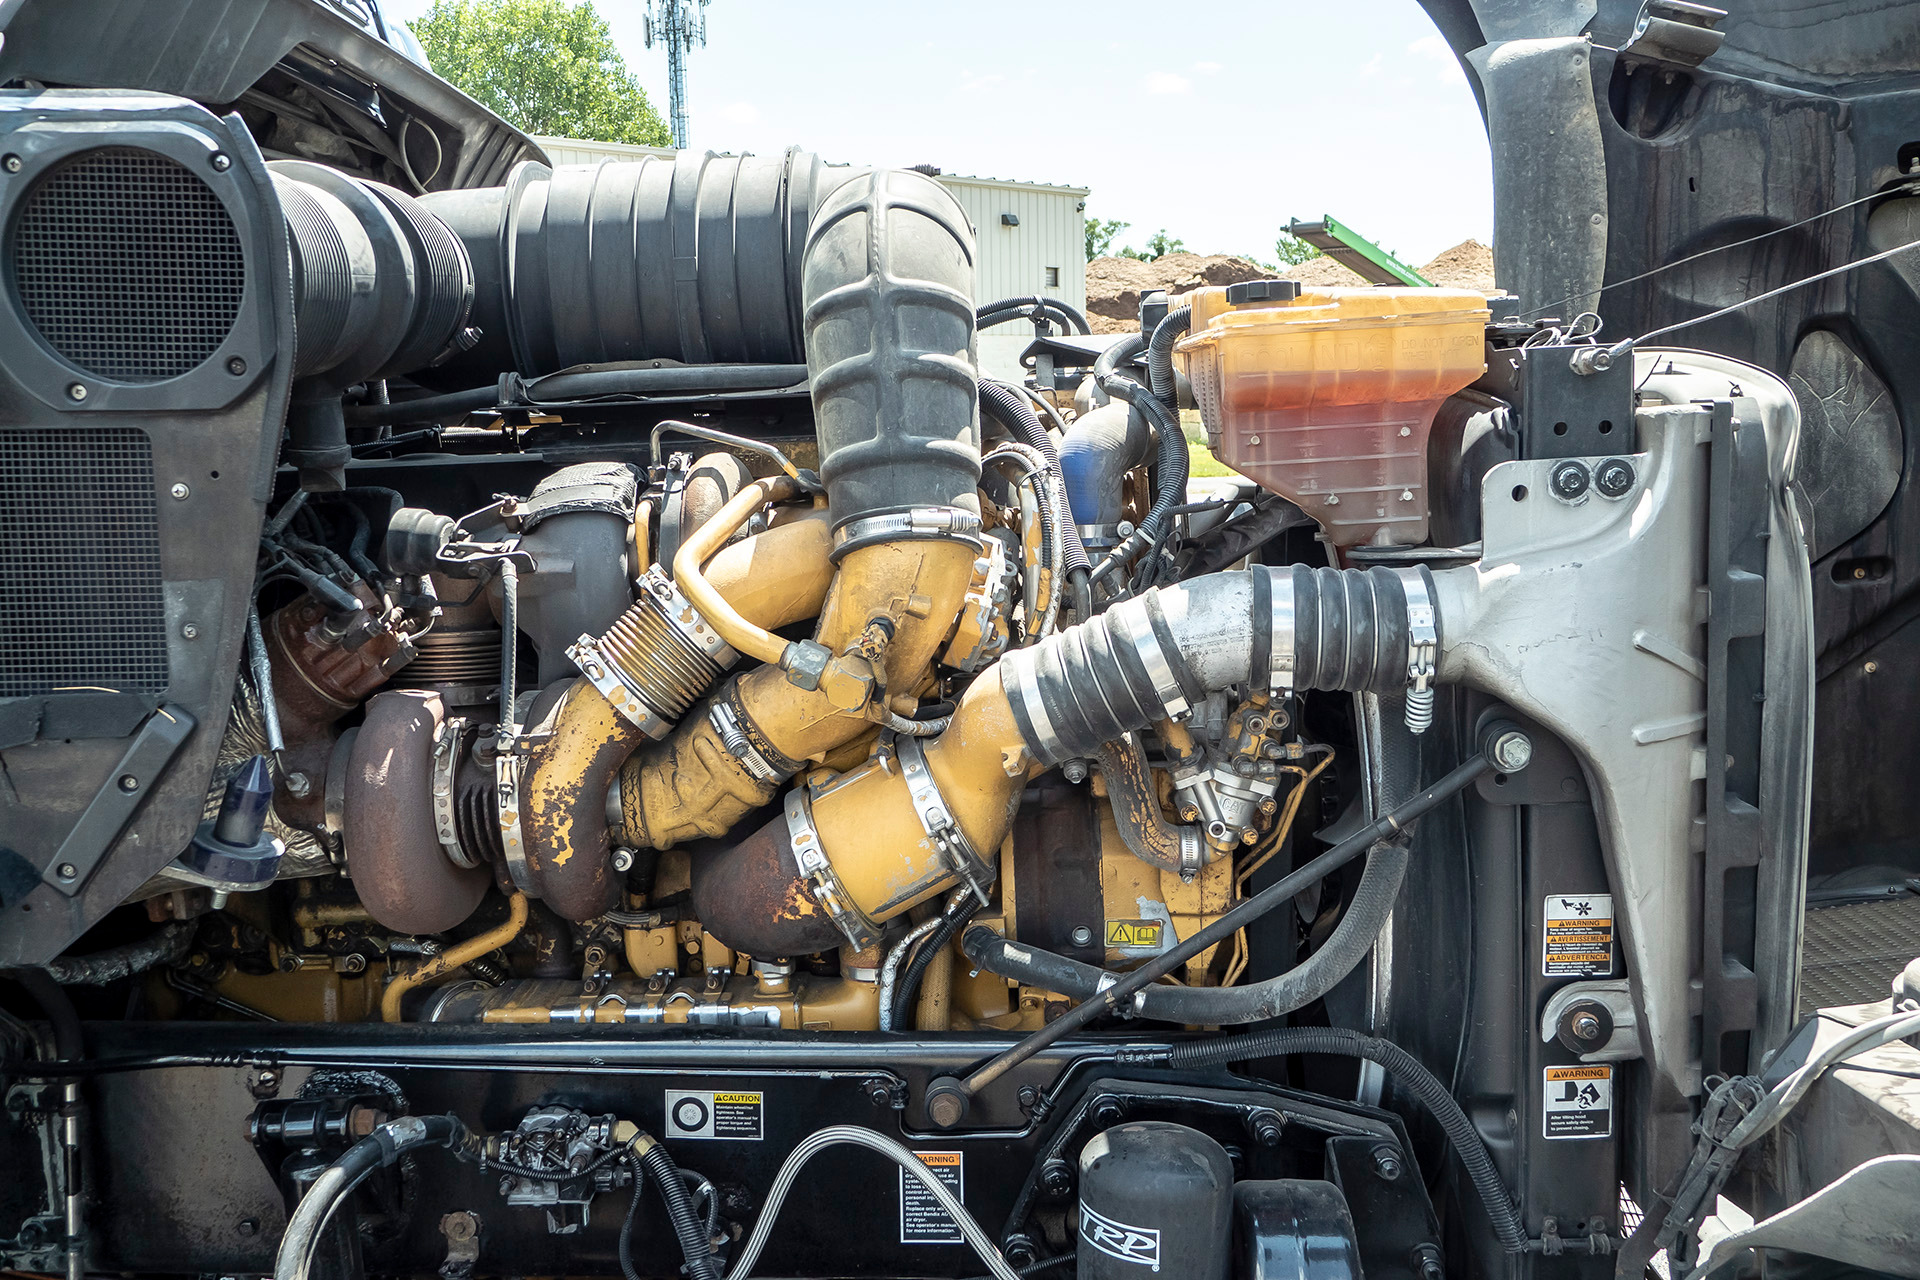 Used-2009-Kenworth-T800-Day-Cab-152L-TURBOCHARGED-DIESEL-ENGINE